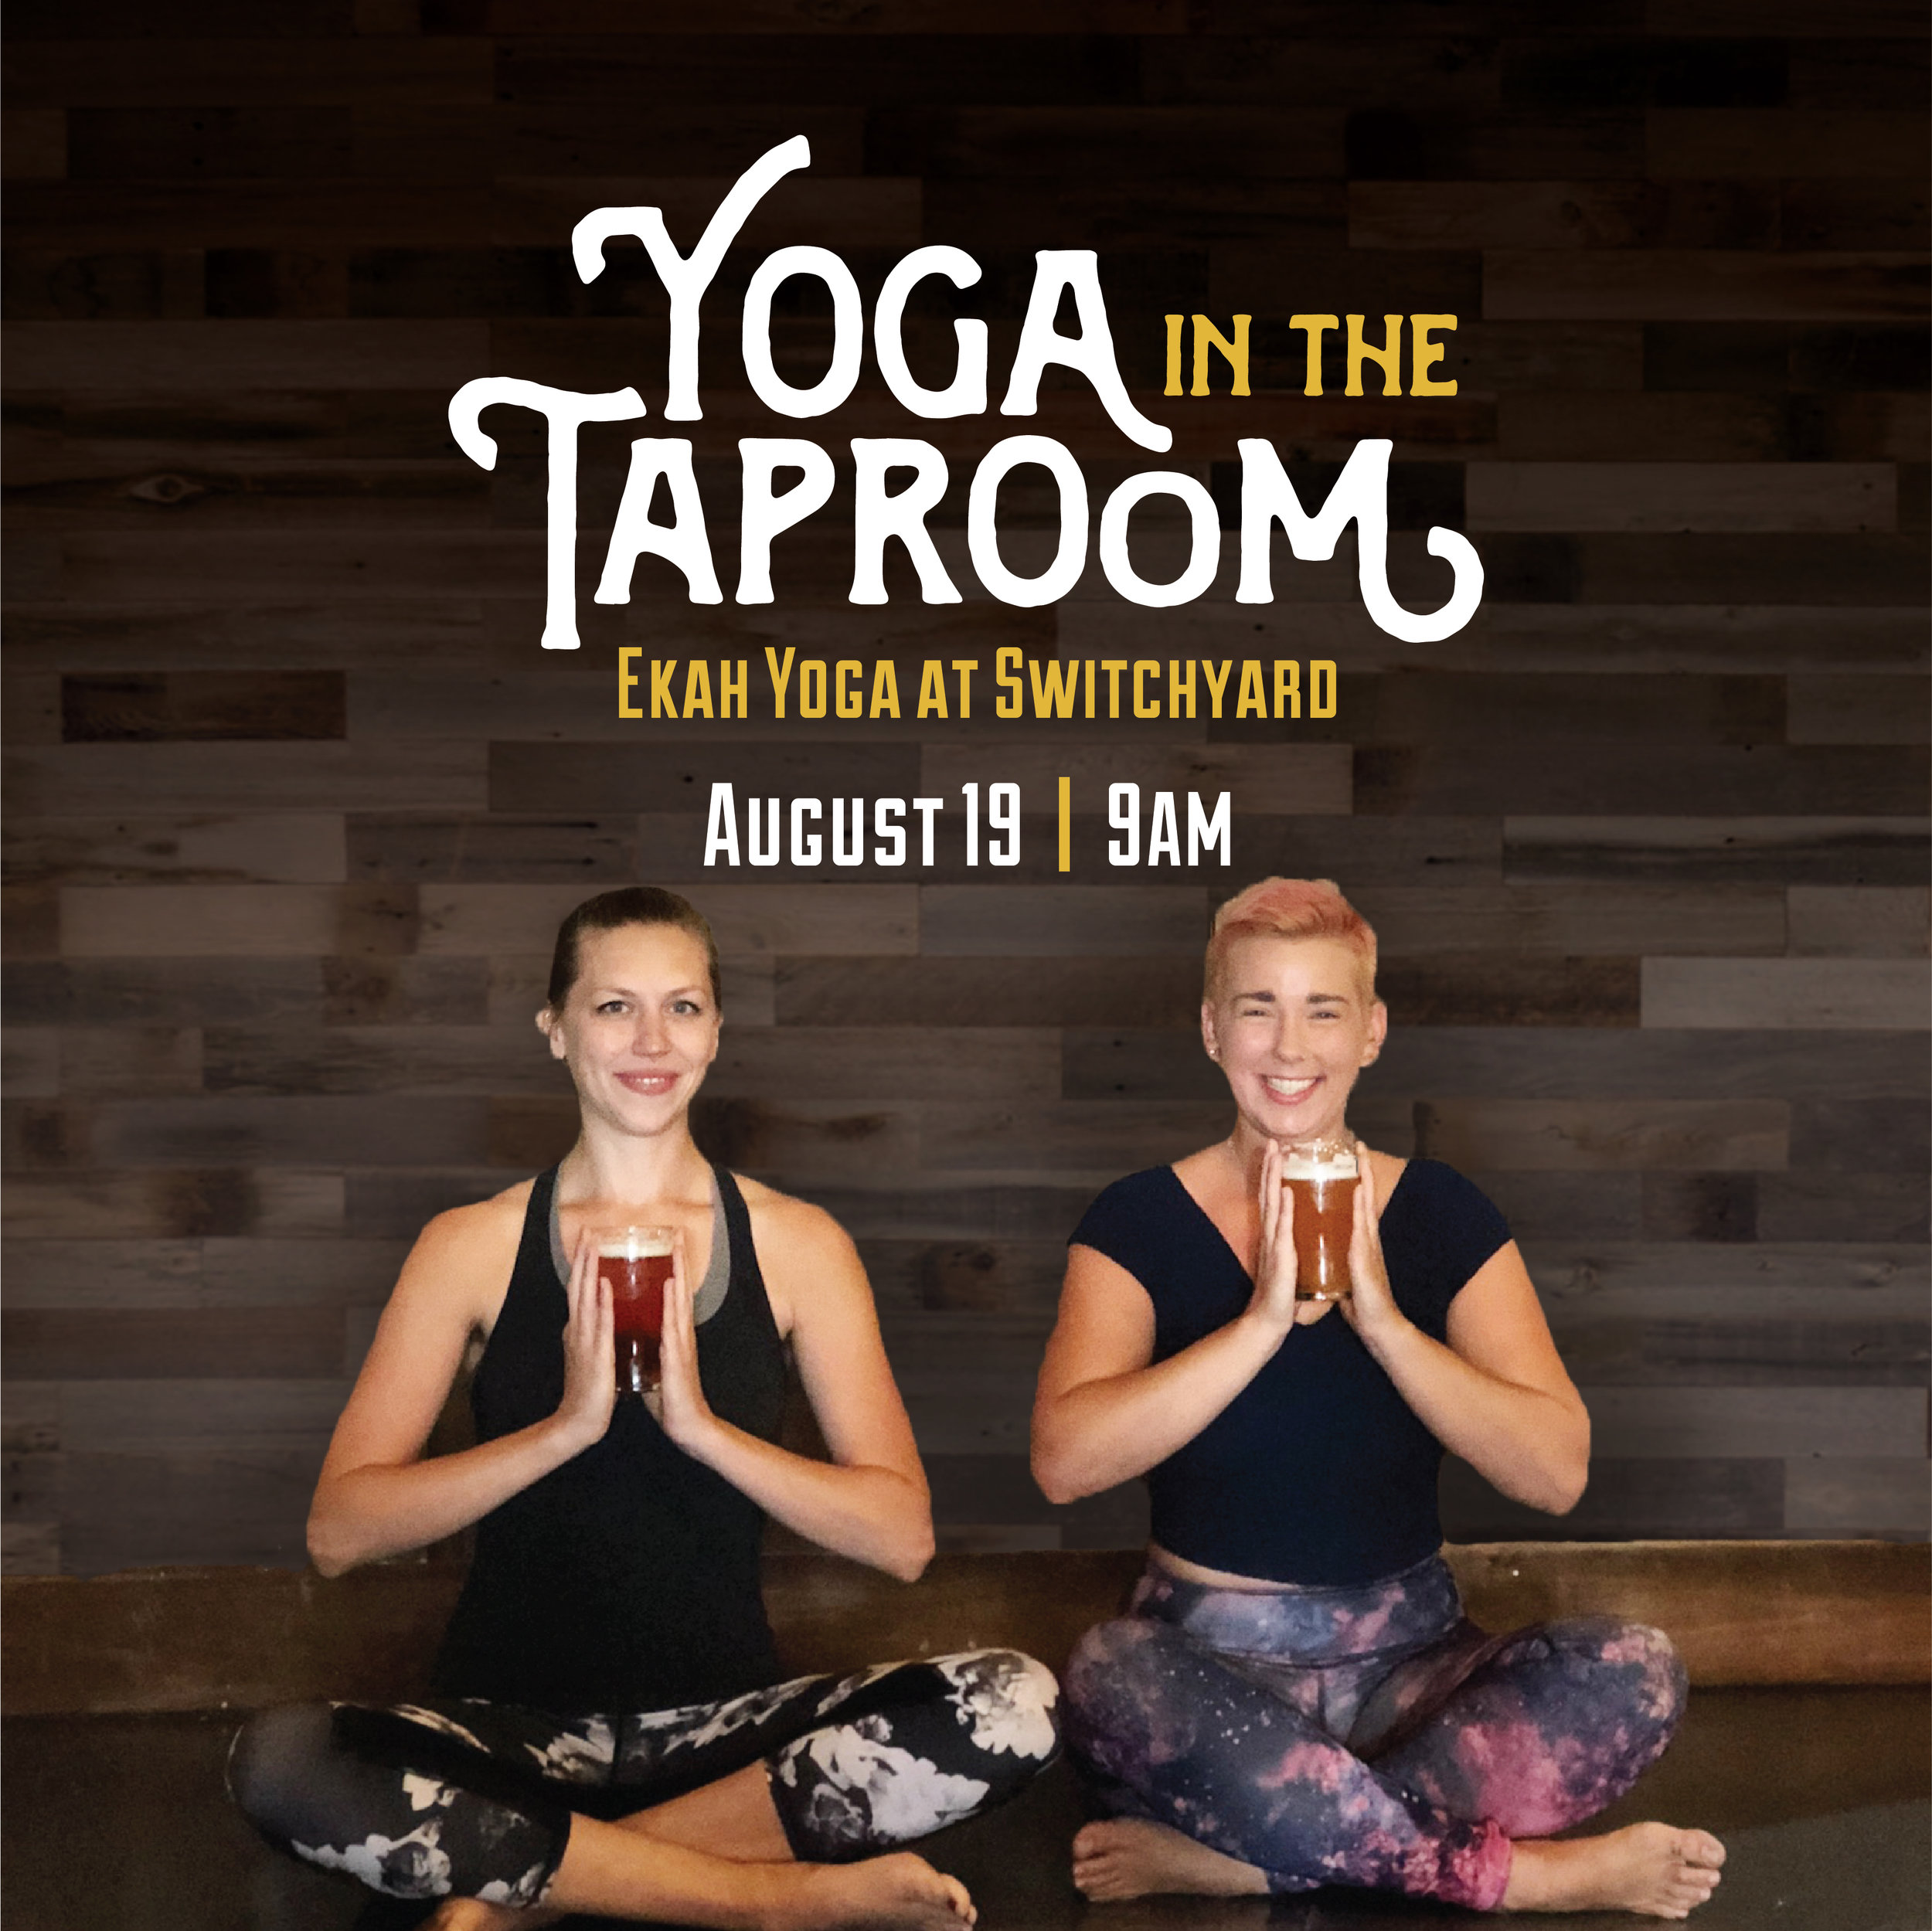 Stretch, strengthen and relax during this all-levels yoga flow class led by Quinndalyn from  Ekah Yoga ! At the end of class, stick around for a complimentary beermosa, mimosa, or pint of your favorite Switchyard beer!  $15 per person, includes a Switchyard beer, Mimosa or Beermosa!  Register Online:https://goo.gl/8kvEbU